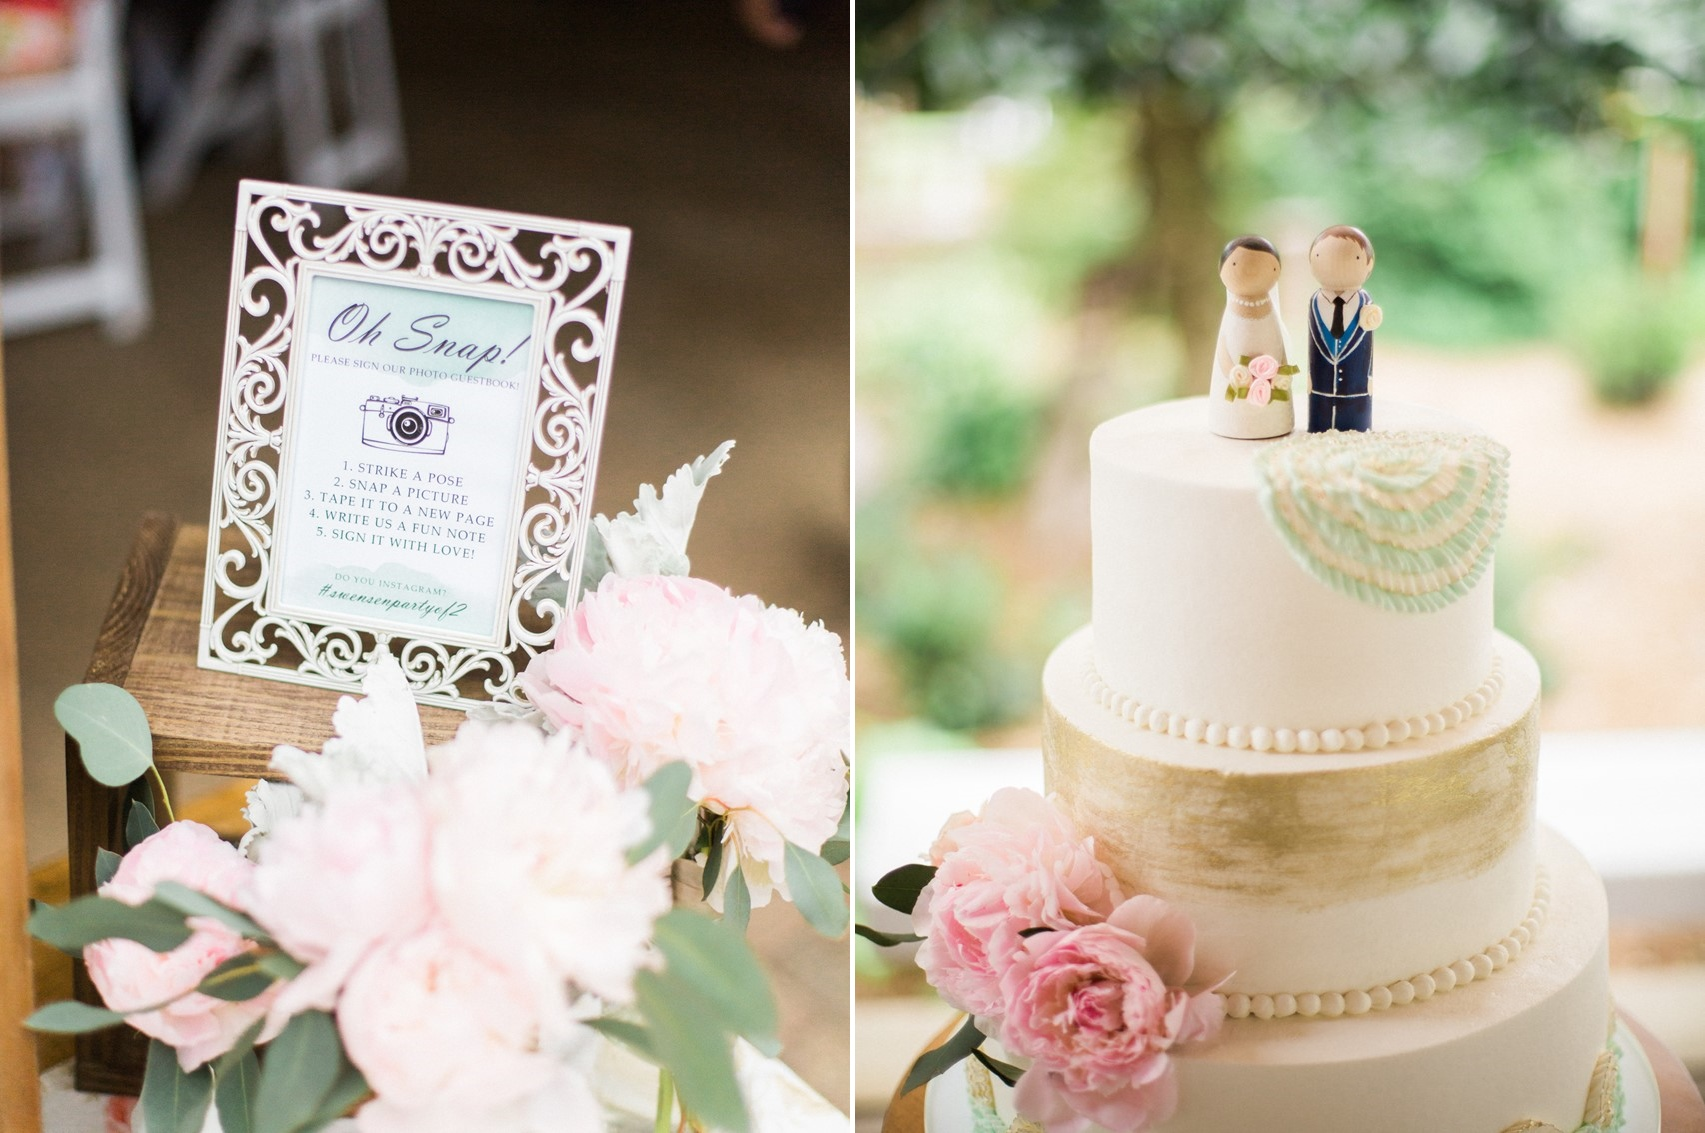 Sweet Pastel Wedding Cake with Wooden Peg Cake Toppers